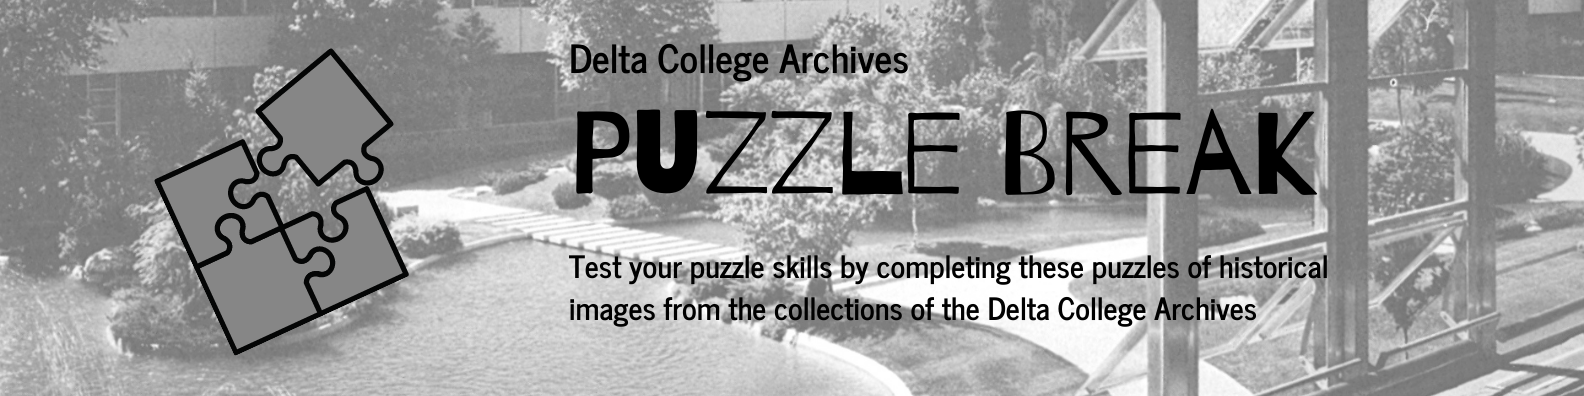 Graphic with text Delta College Archives Puzzle Break Test your puzzle skills by completing these puzzles of historical images from the collections of the Delta College Archives